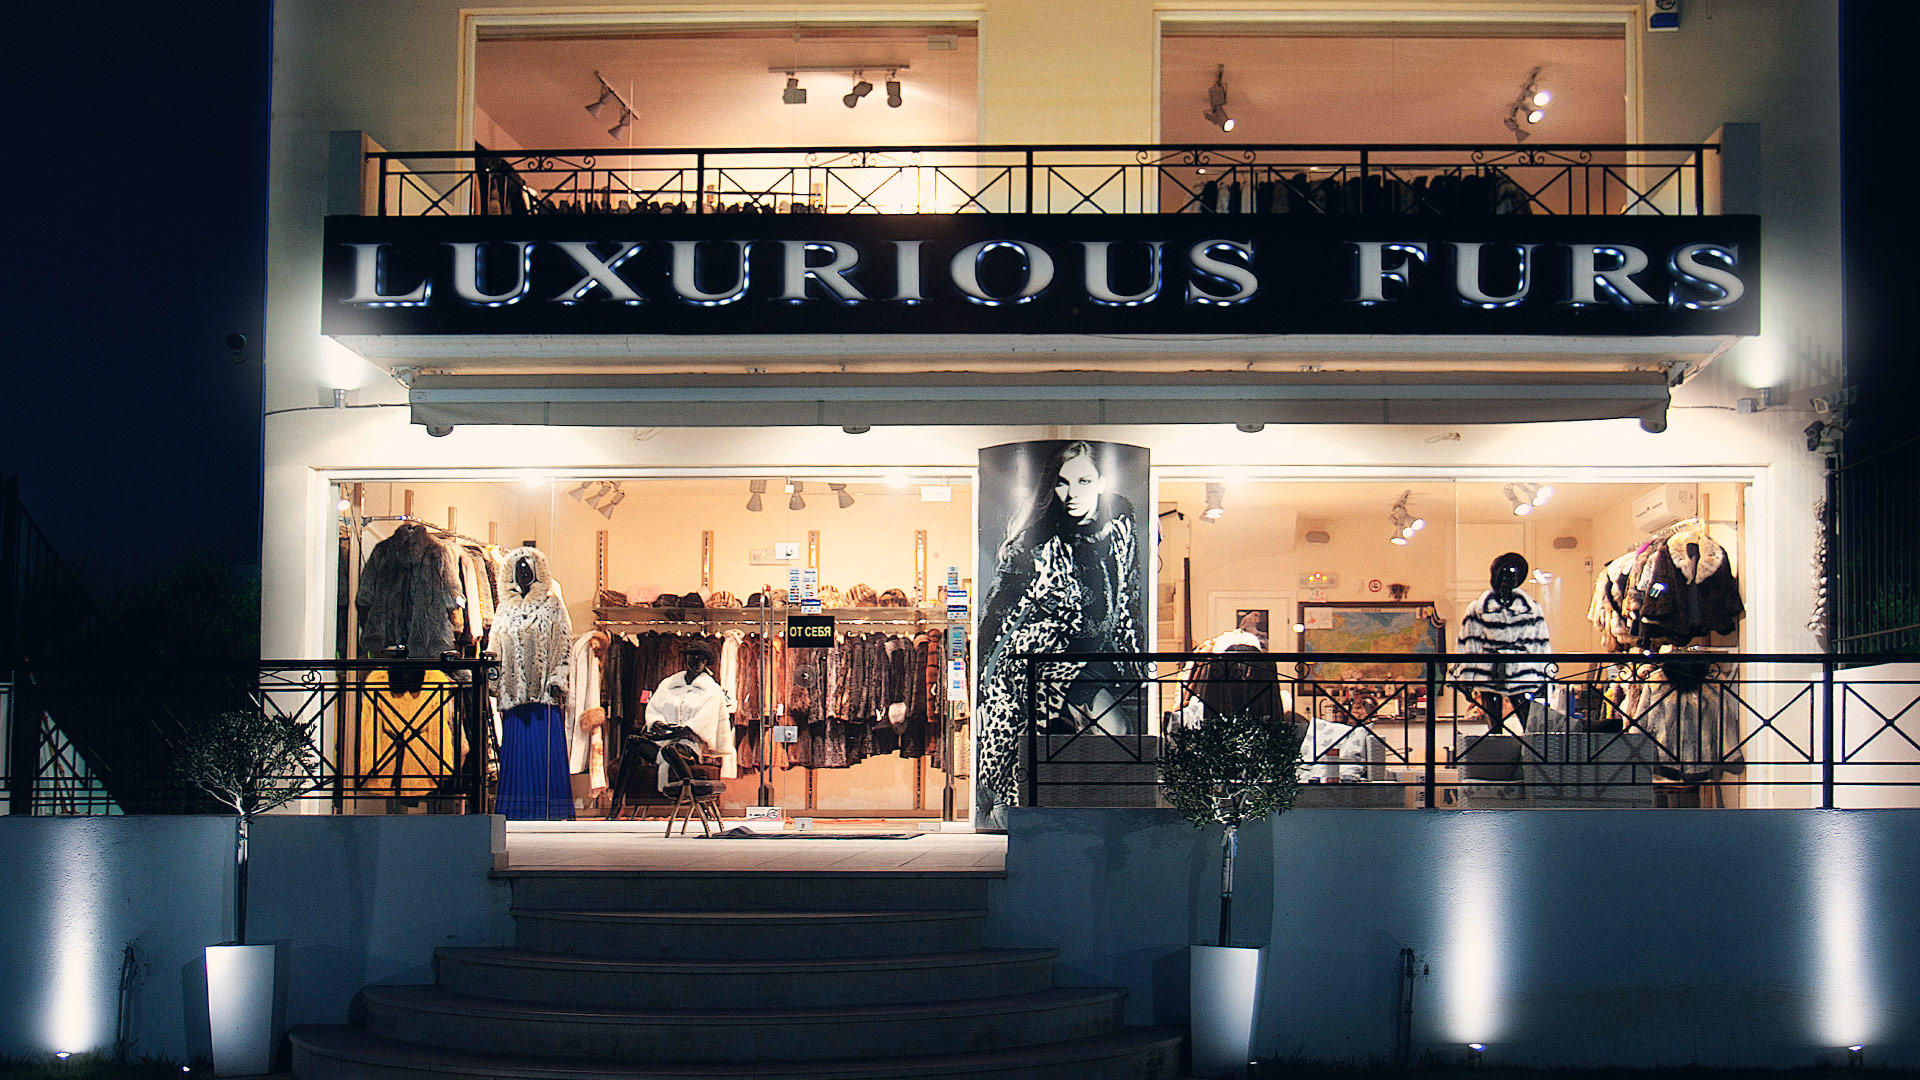 Luxury furs